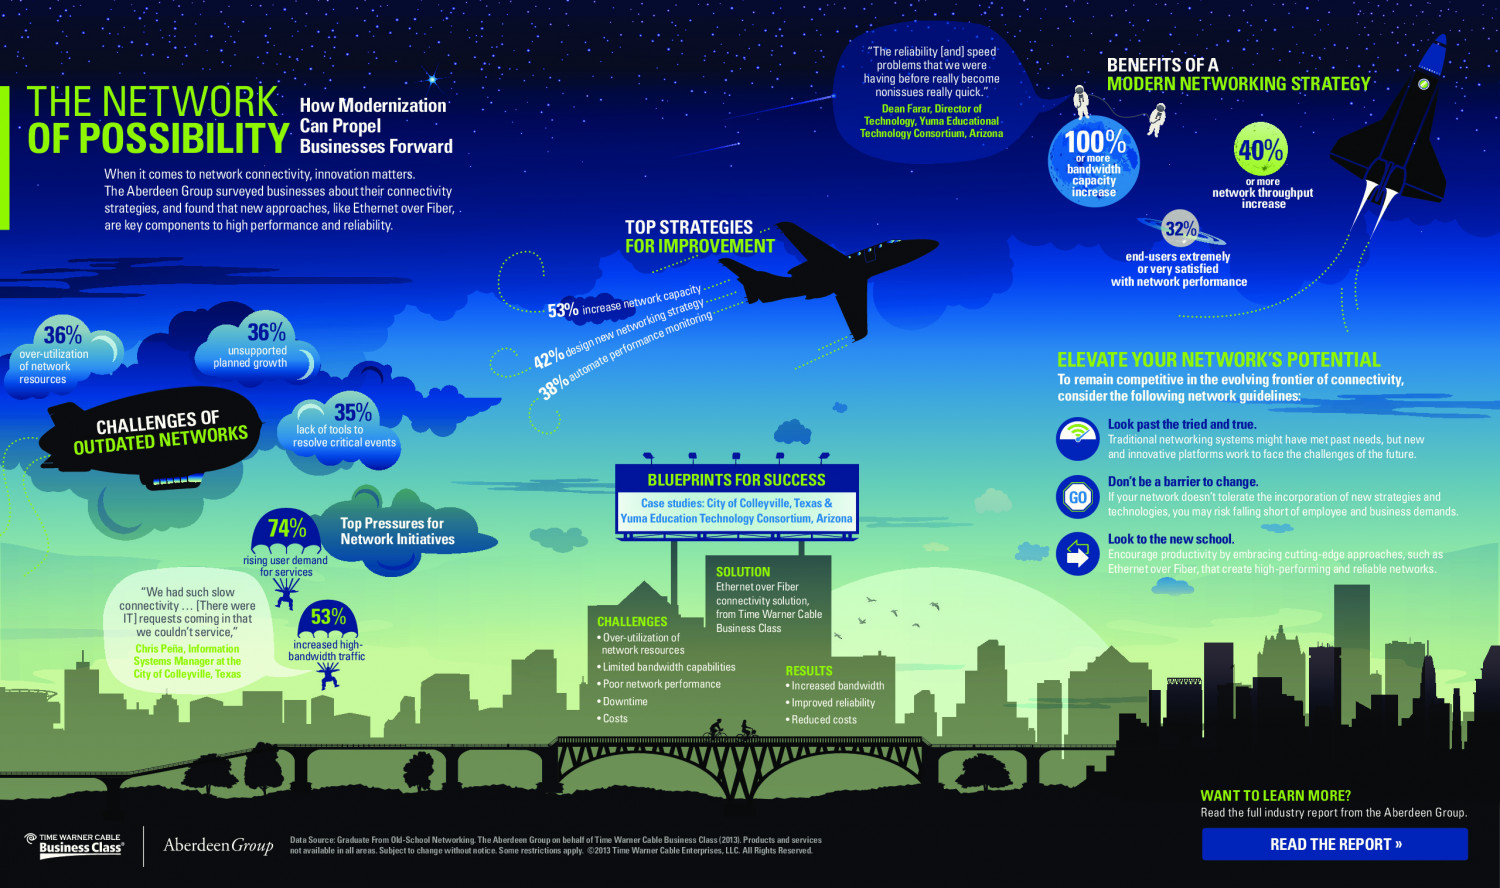 The Network of Possibility: How Modernization Propels Businesses Forward Infographic